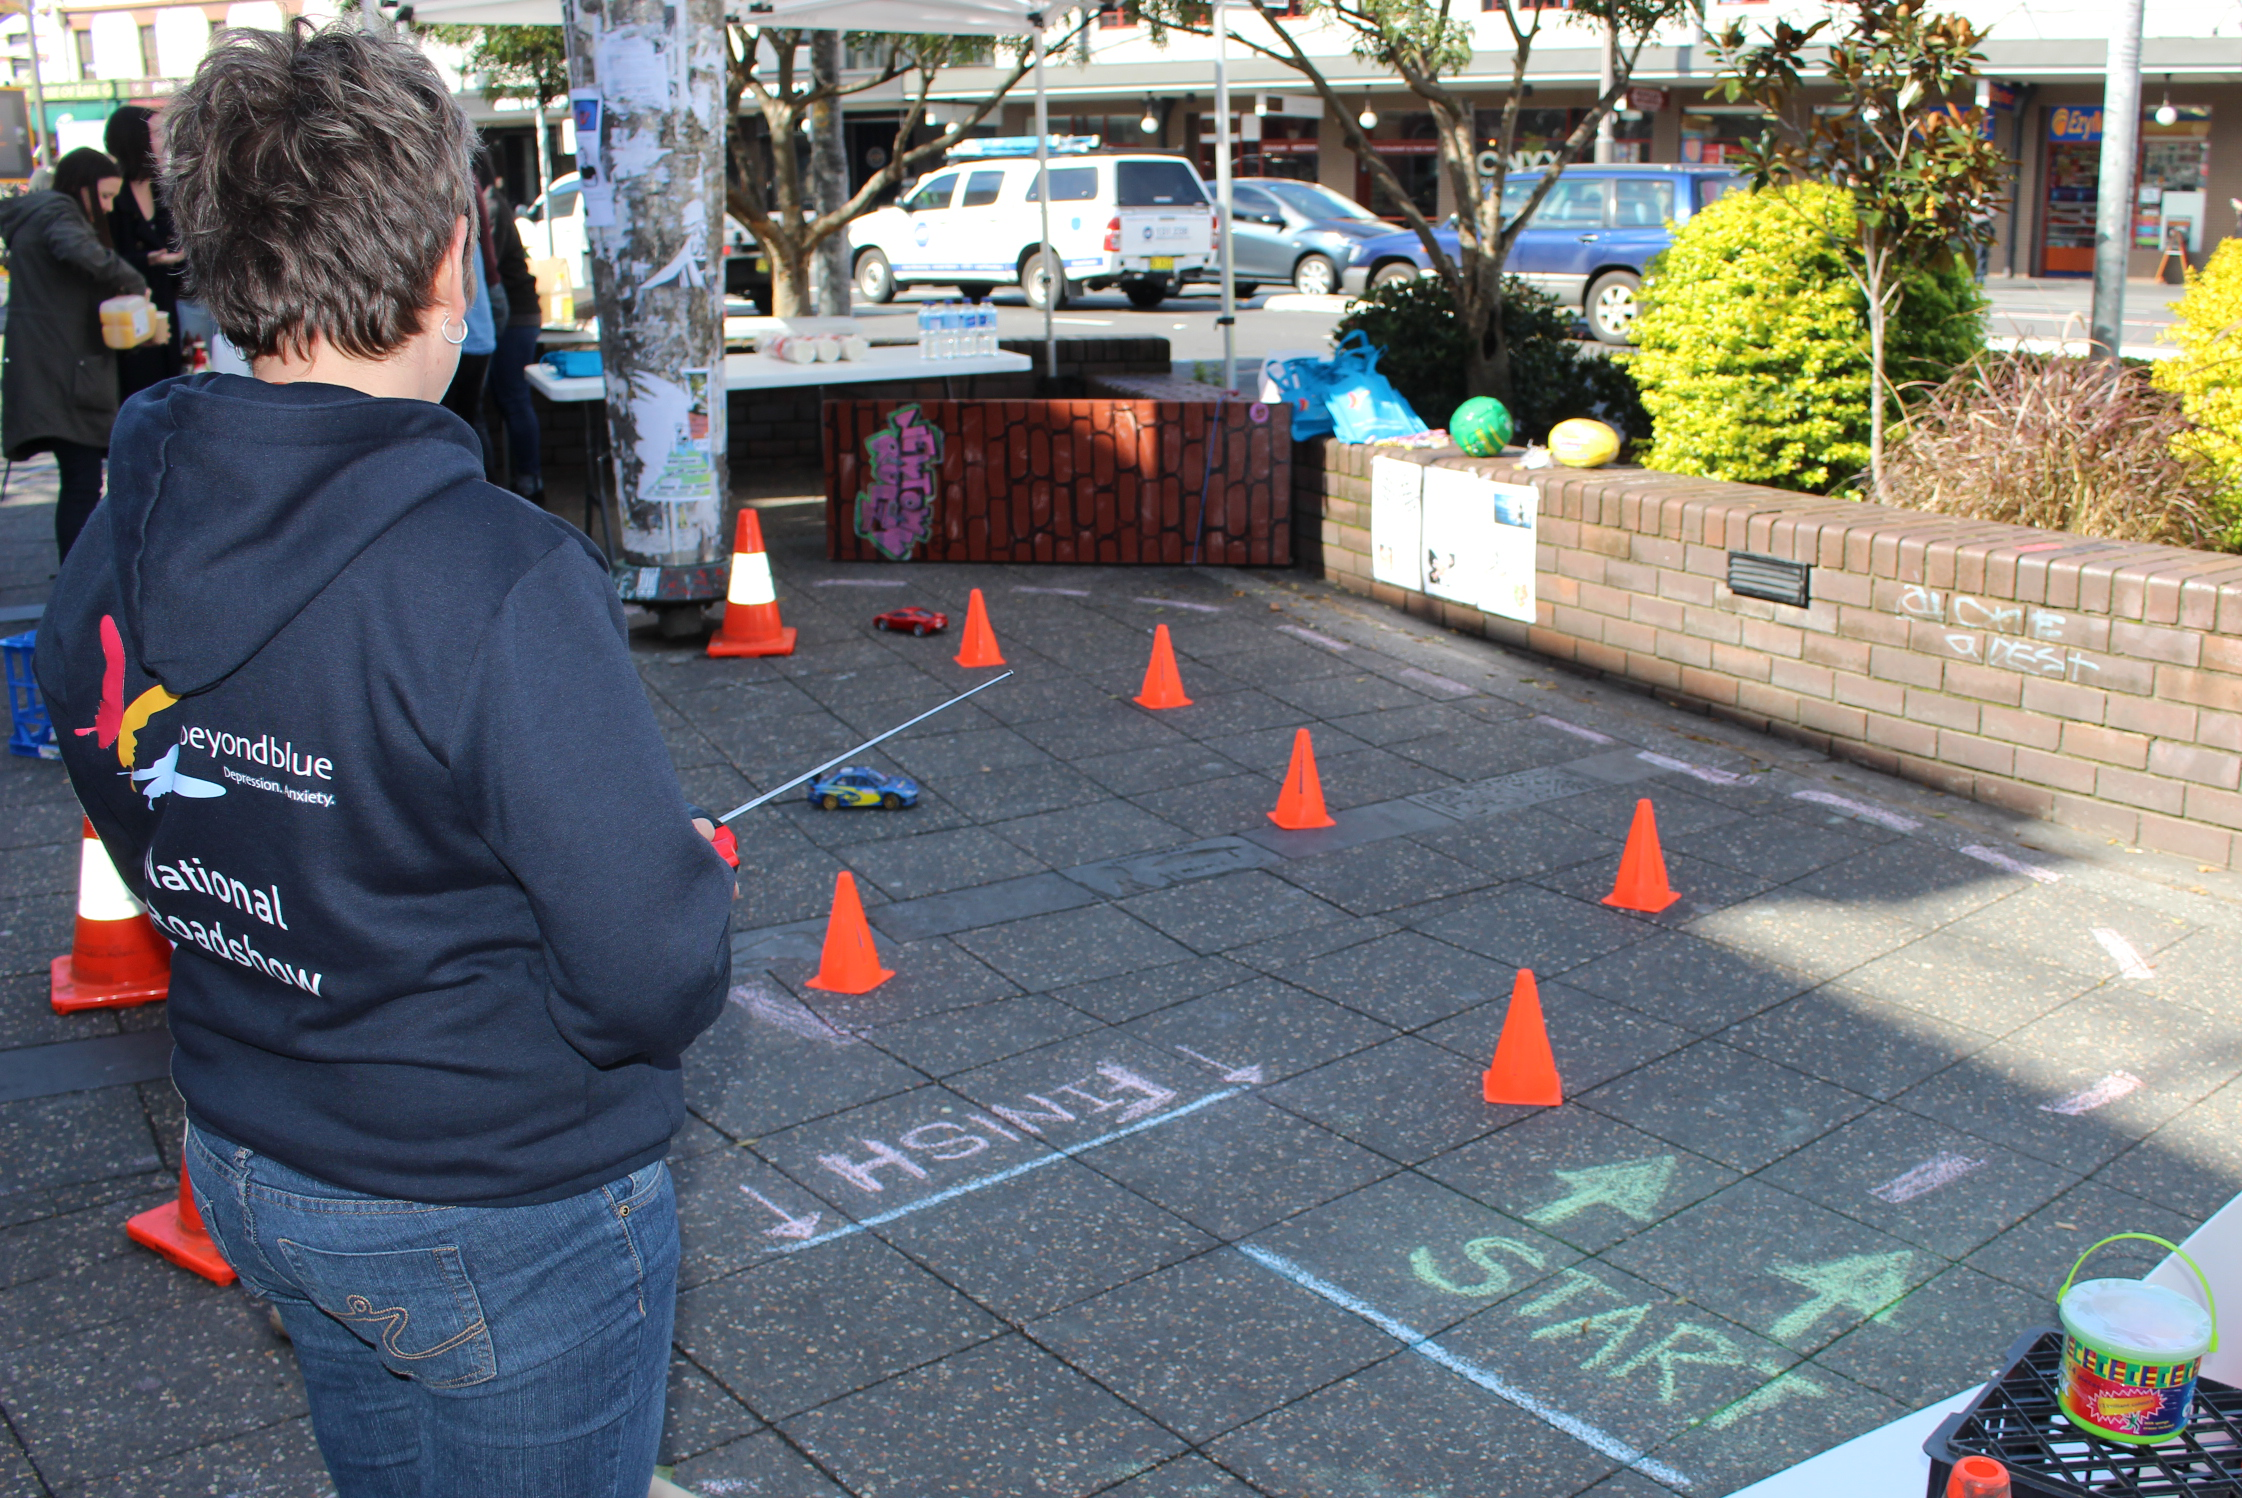 Beyond Blue's Stef takes on the remote control car racing course in Newtown.